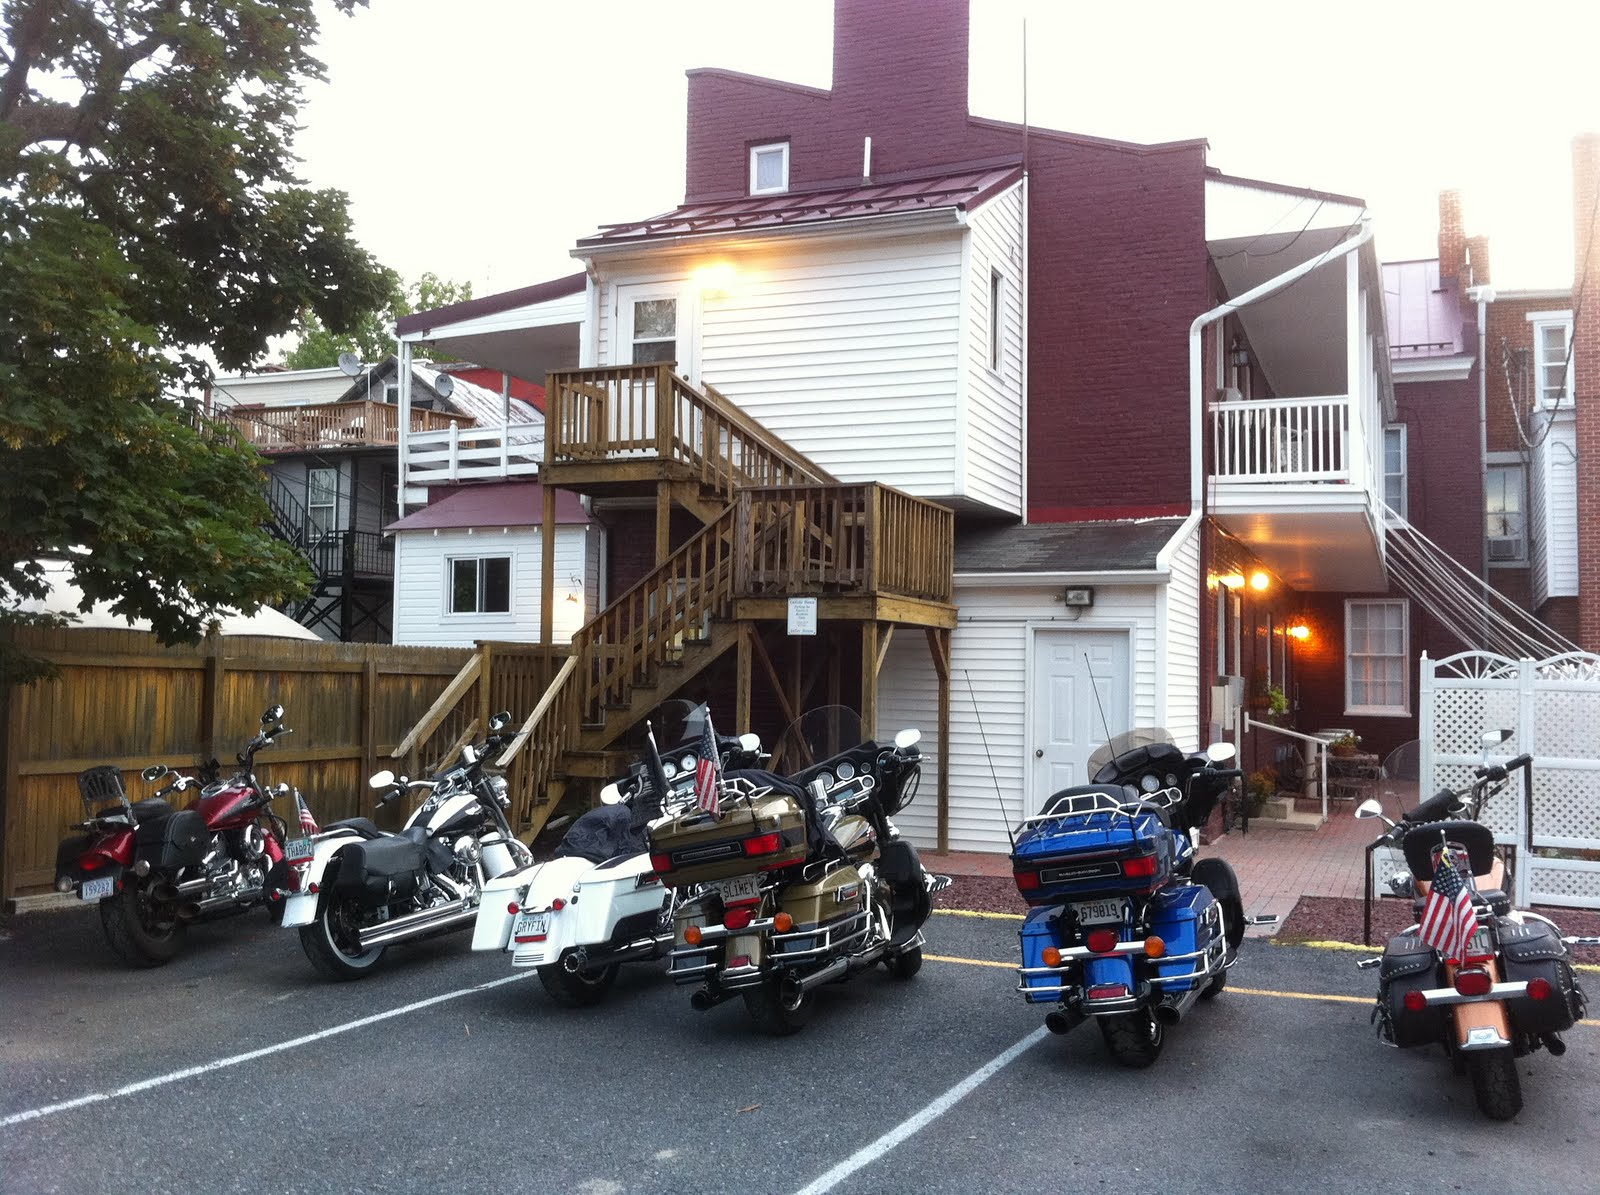 Carlisle house bed breakfast blog the bikes are back in for The carlisle house